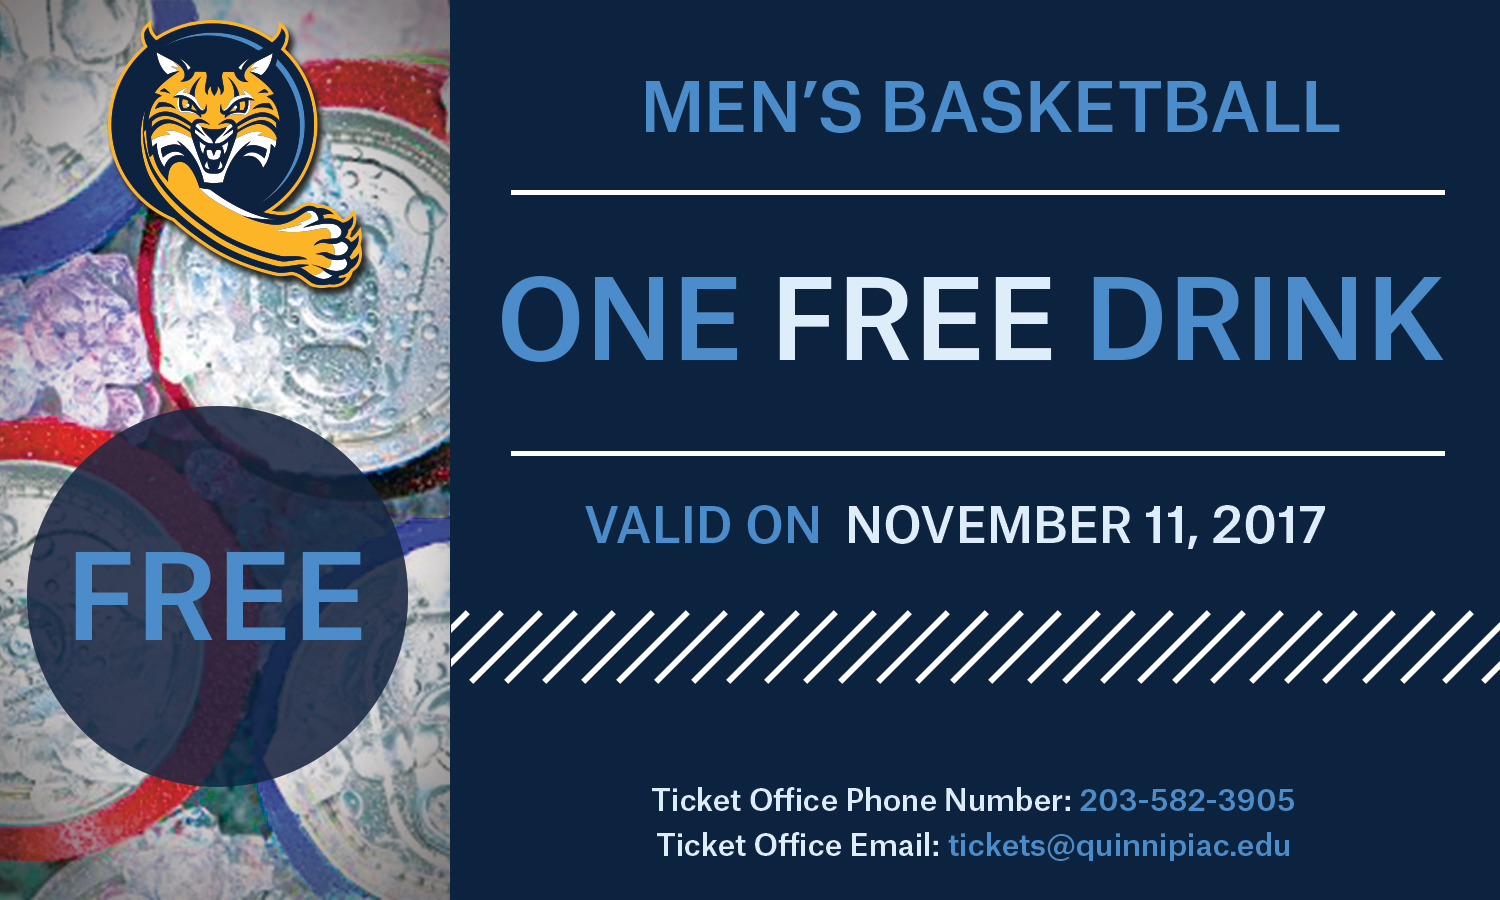 TICKET_OFFICE_FREE_DRINK_VOUCHER_NOV11.jpg